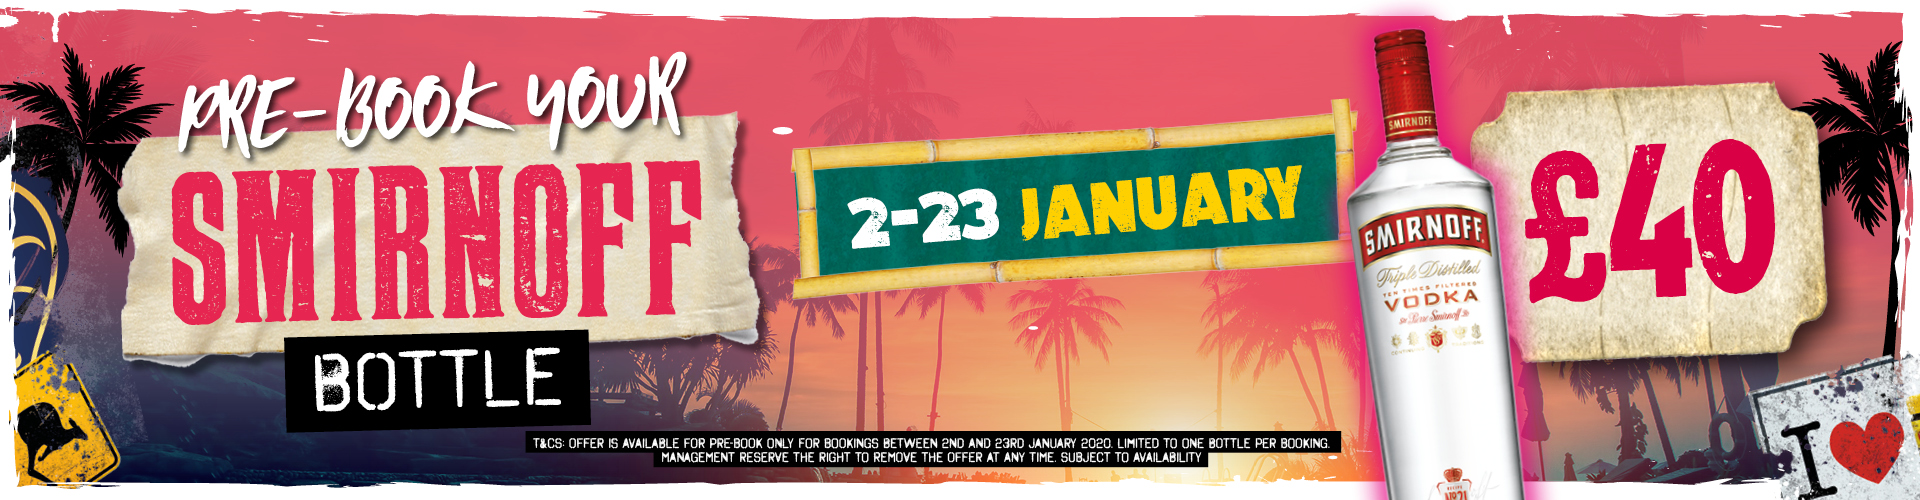 Pre-Book Your Smirnoff Bottle This January!